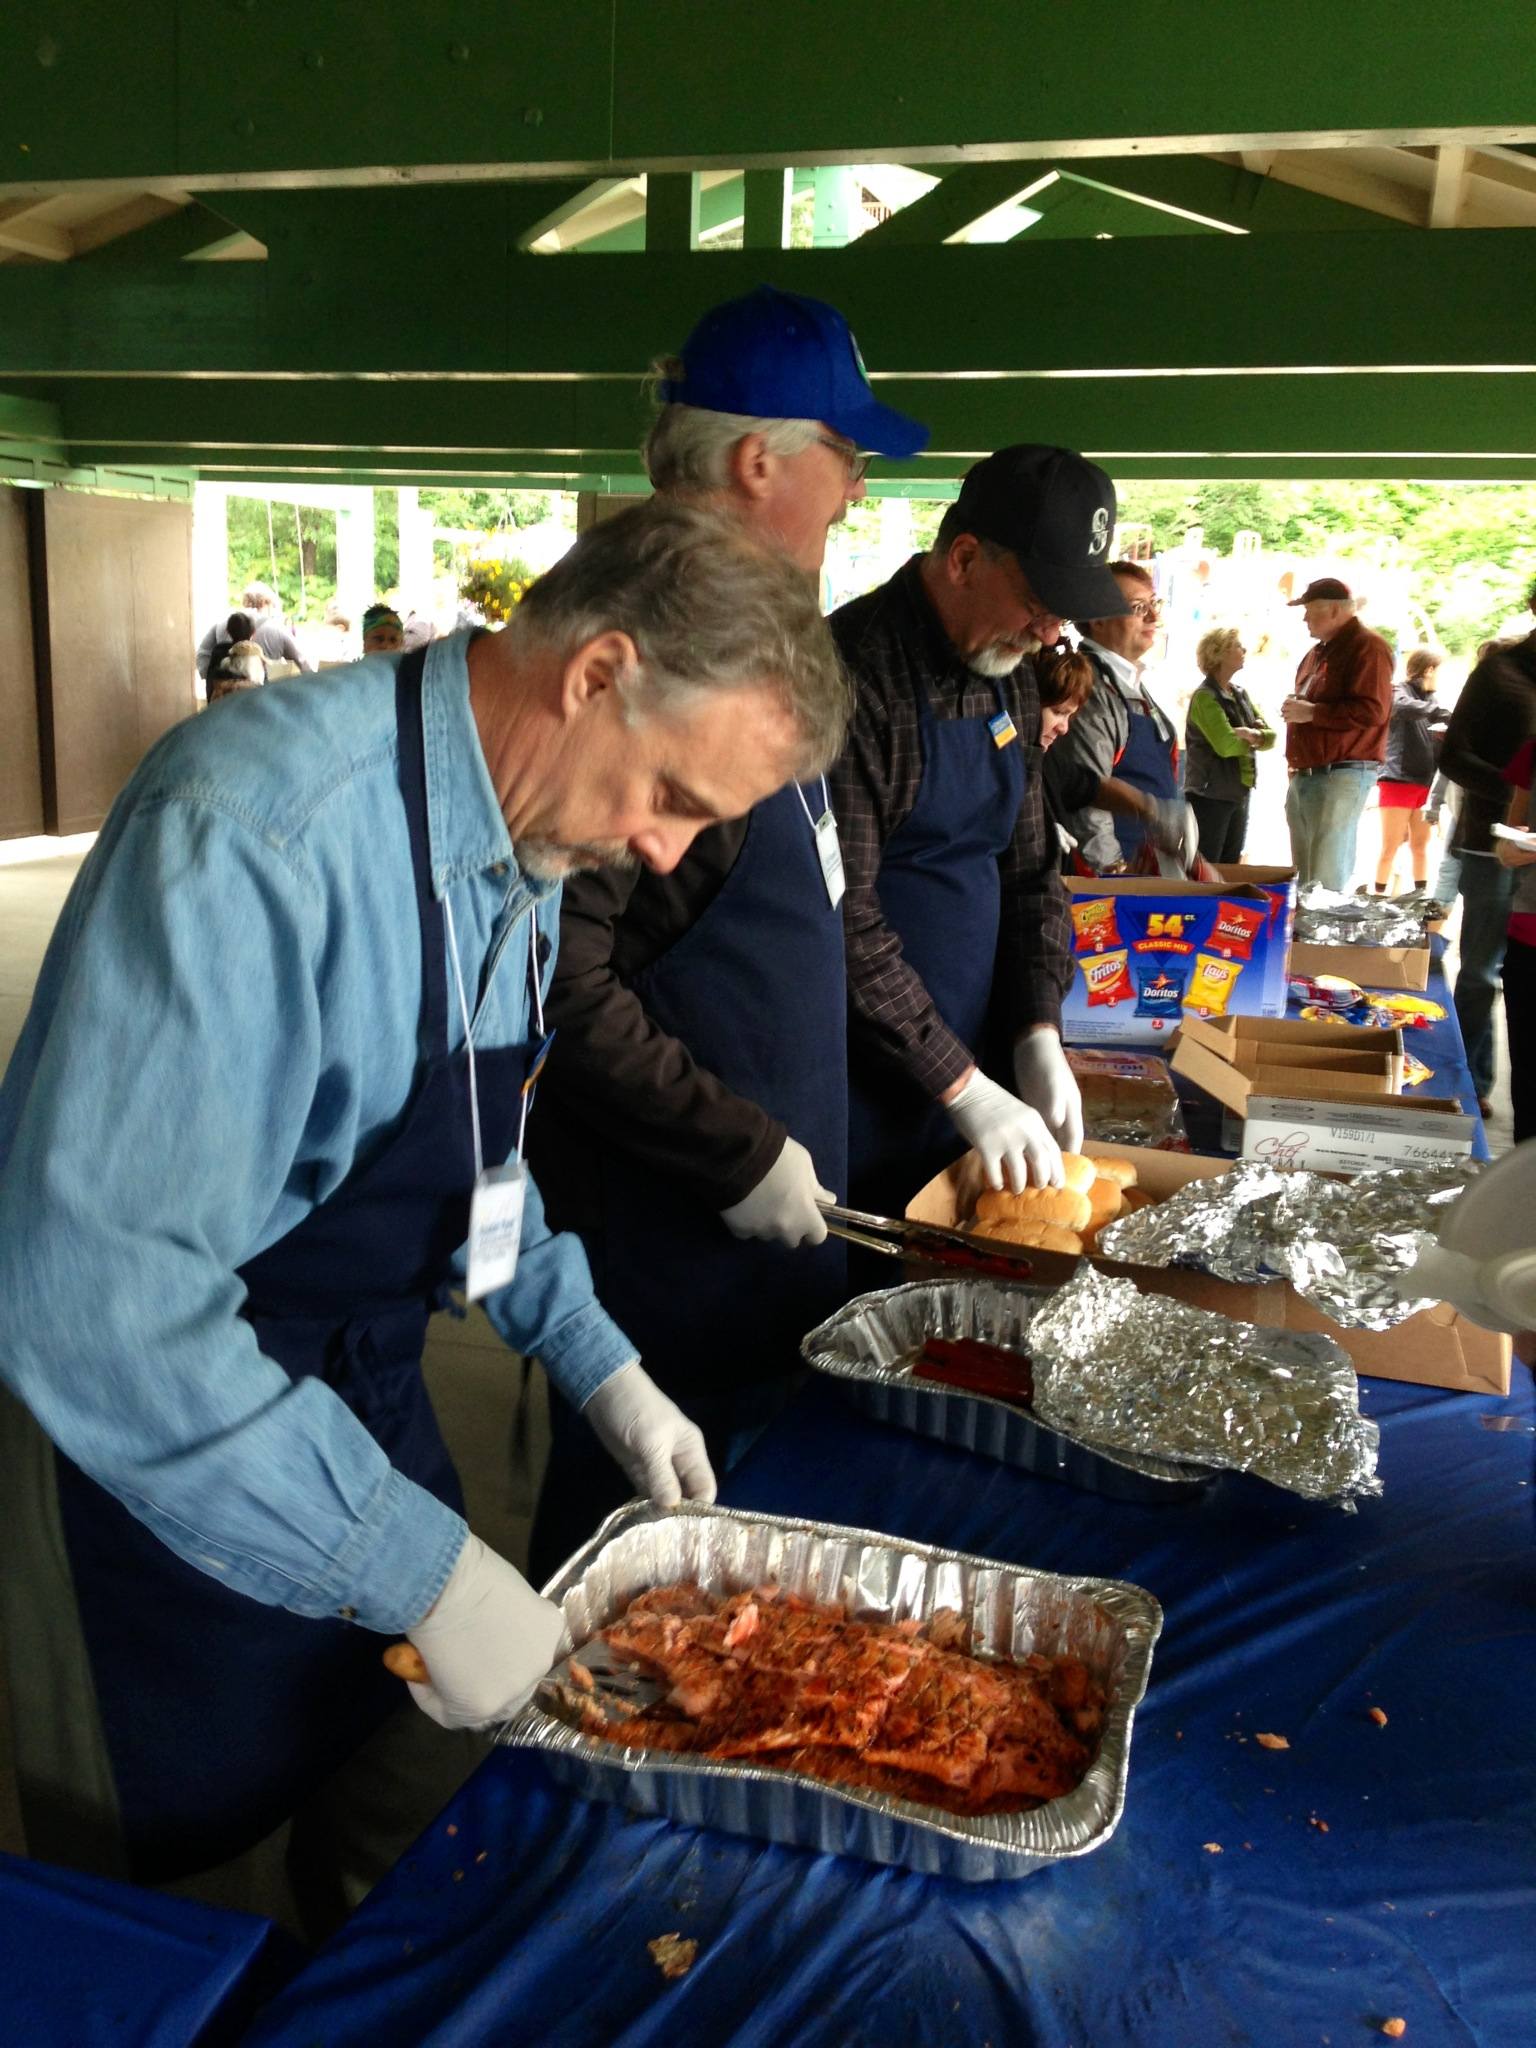 Members of the Governor's Cabinet were on hand to serve the public scrumptious Alaska WILD salmon.